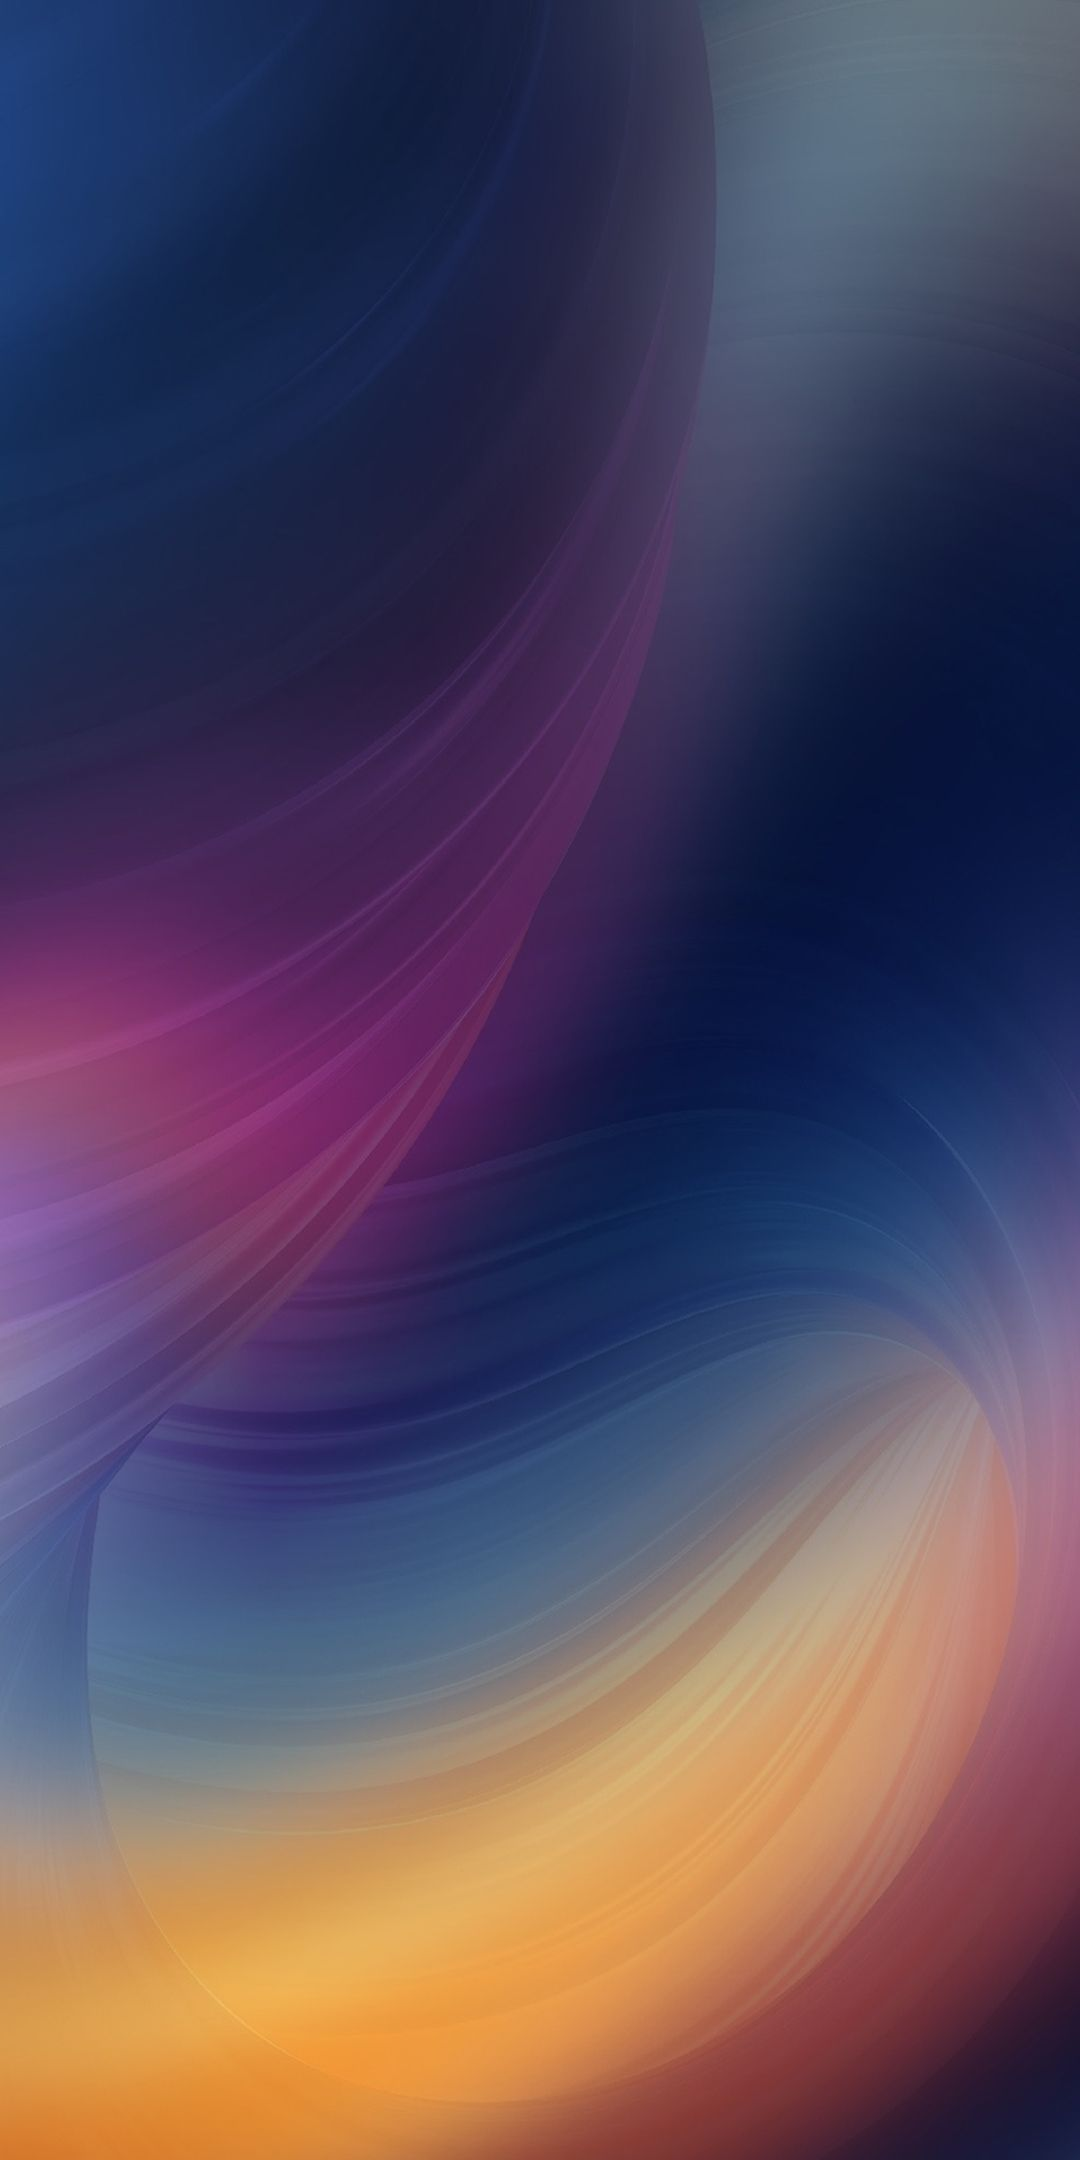 Huawei Mate 10 Pro Wallpaper 05 of 10 with Abstract Light Dreamy 1080x2160